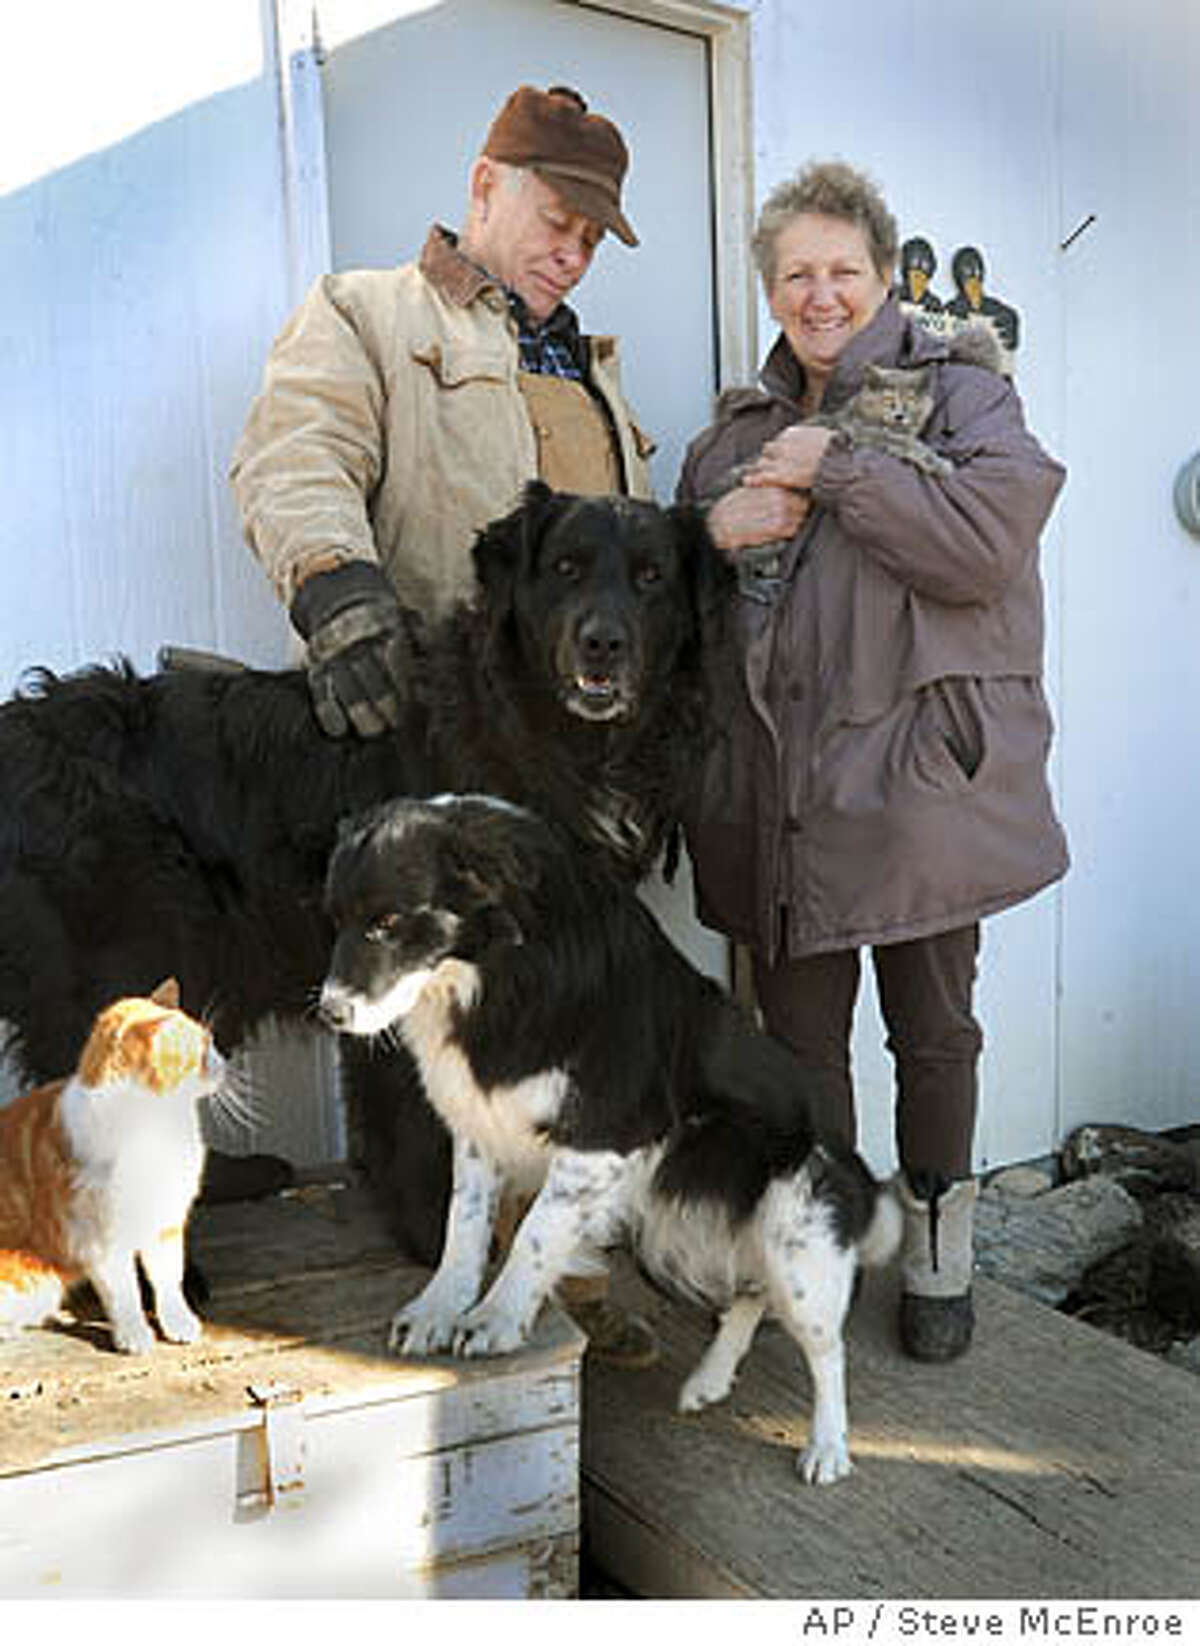 **ADVANCE FOR SUNDAY, FEB. 10** Al and Margaret Falzerano are surrounded by the family dogs Tippy and Buster, who sniffs at one of the many family cats, on their front porch of their rural Newell, SD ranch home on Thursday, Jan. 31, 2008. The couple met and married within two weeks after meeting through a rural matchmaking service. (AP Photo/Steve McEnroe)